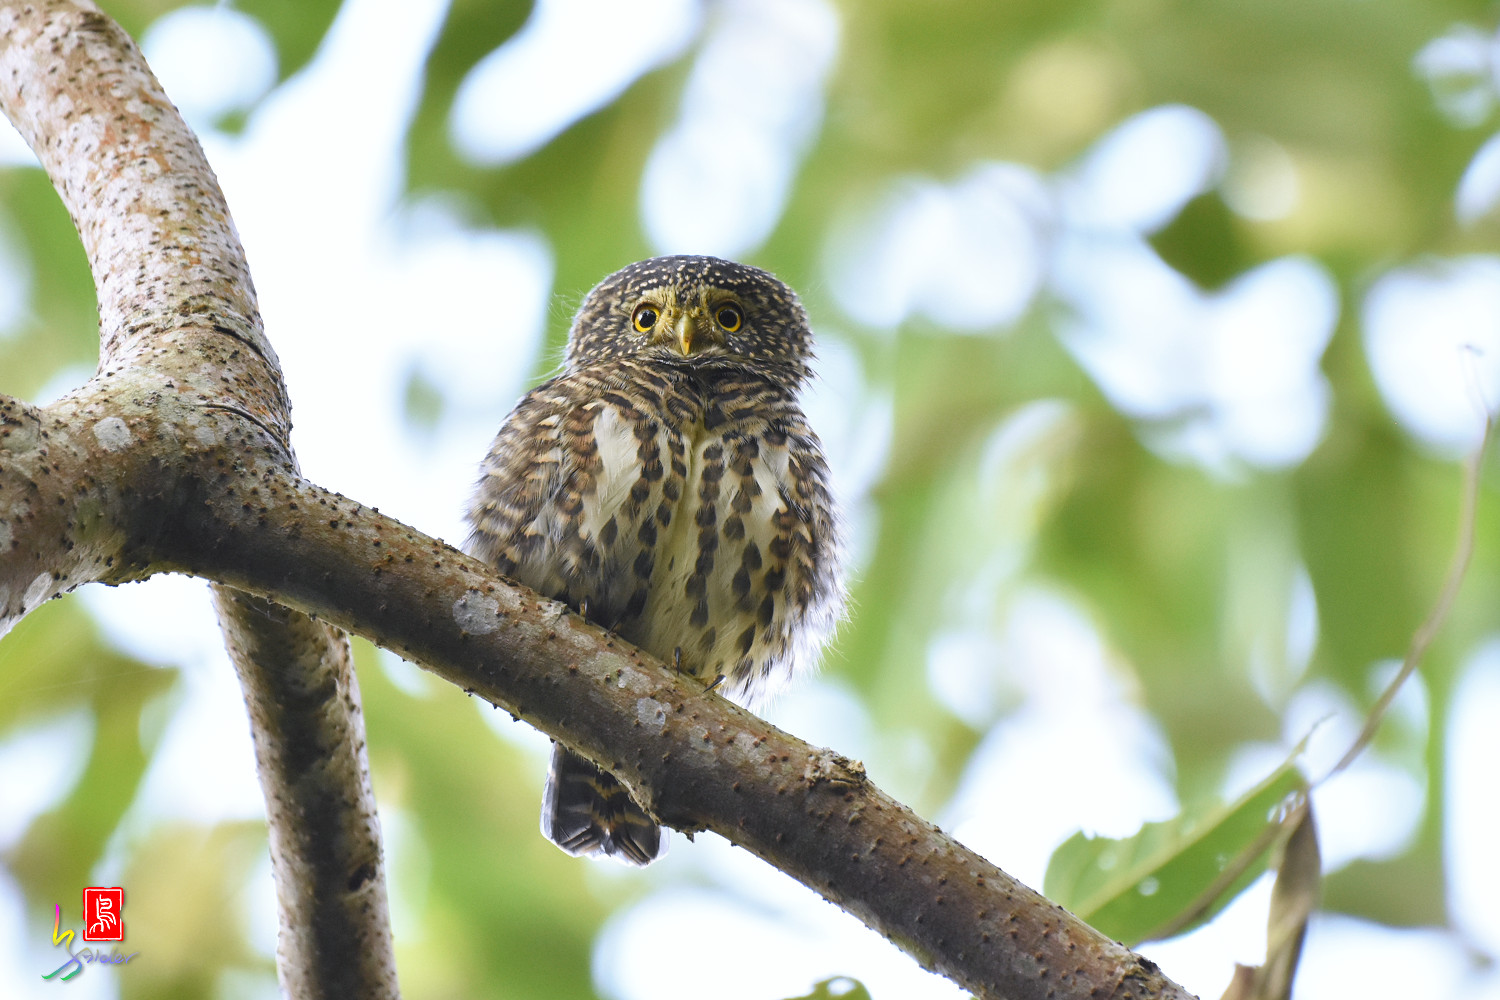 Collared_Owlet_4657